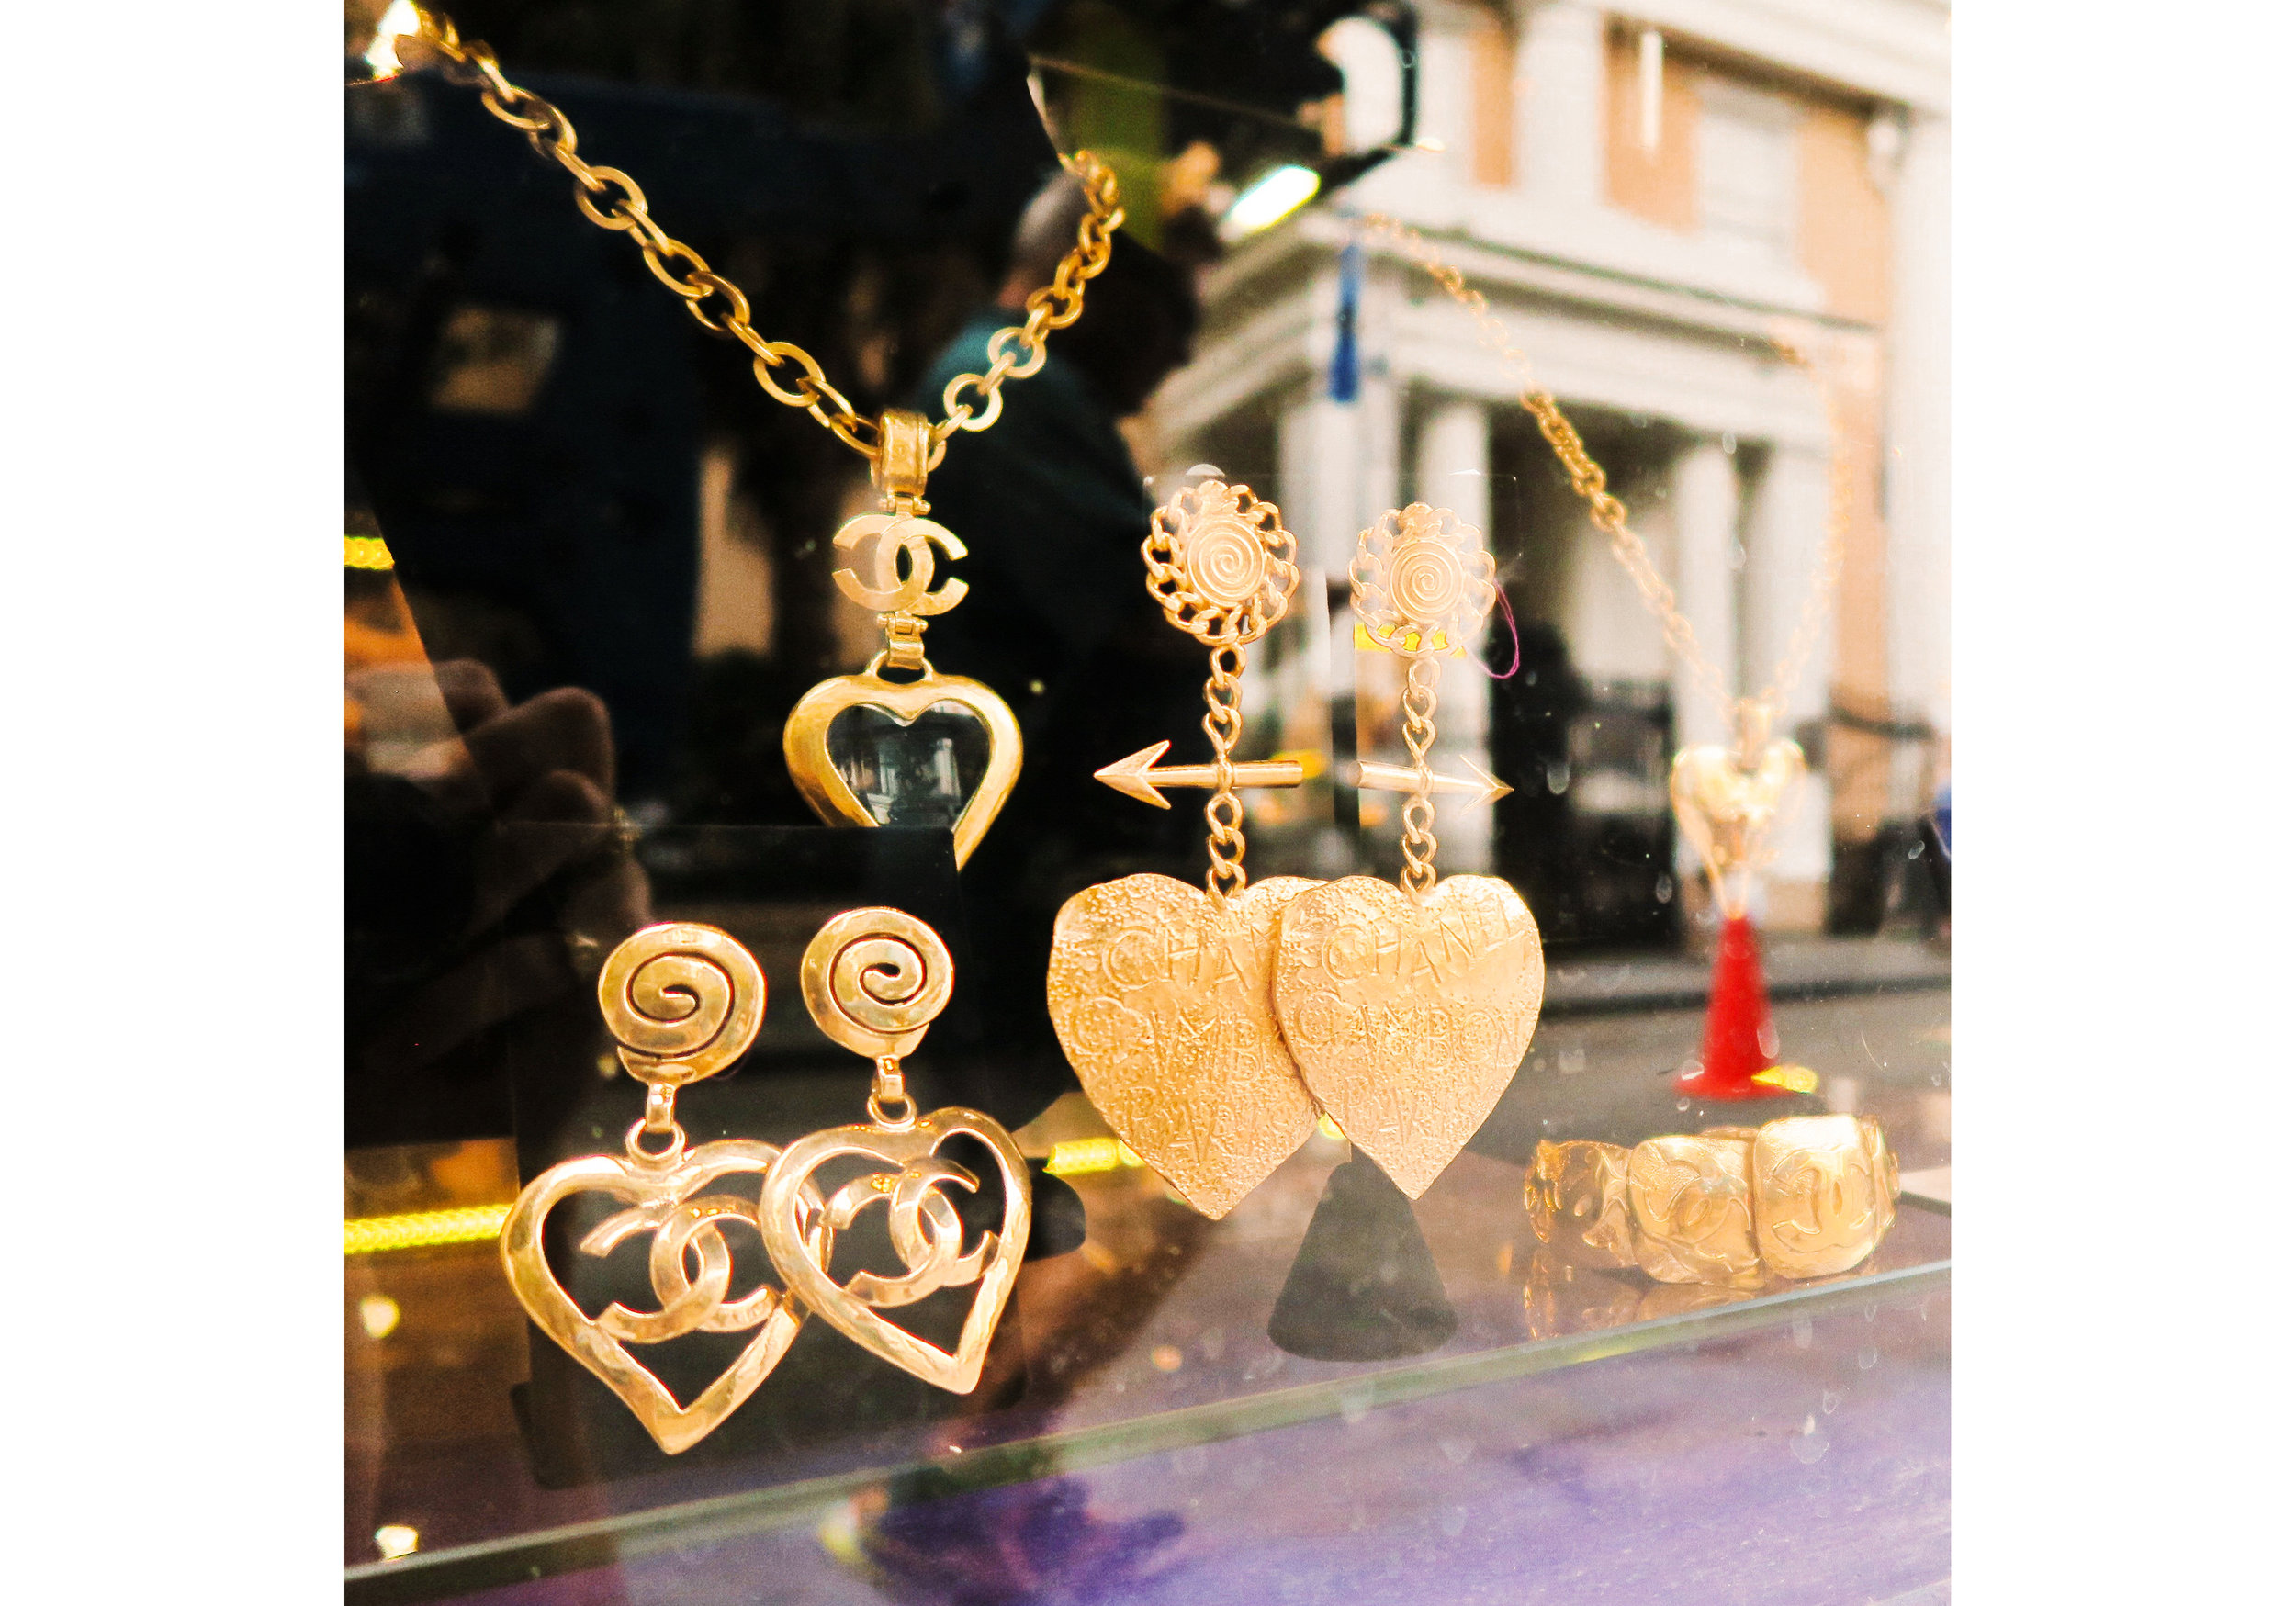 Vintage Chanel Jewelry in New Orleans.jpg